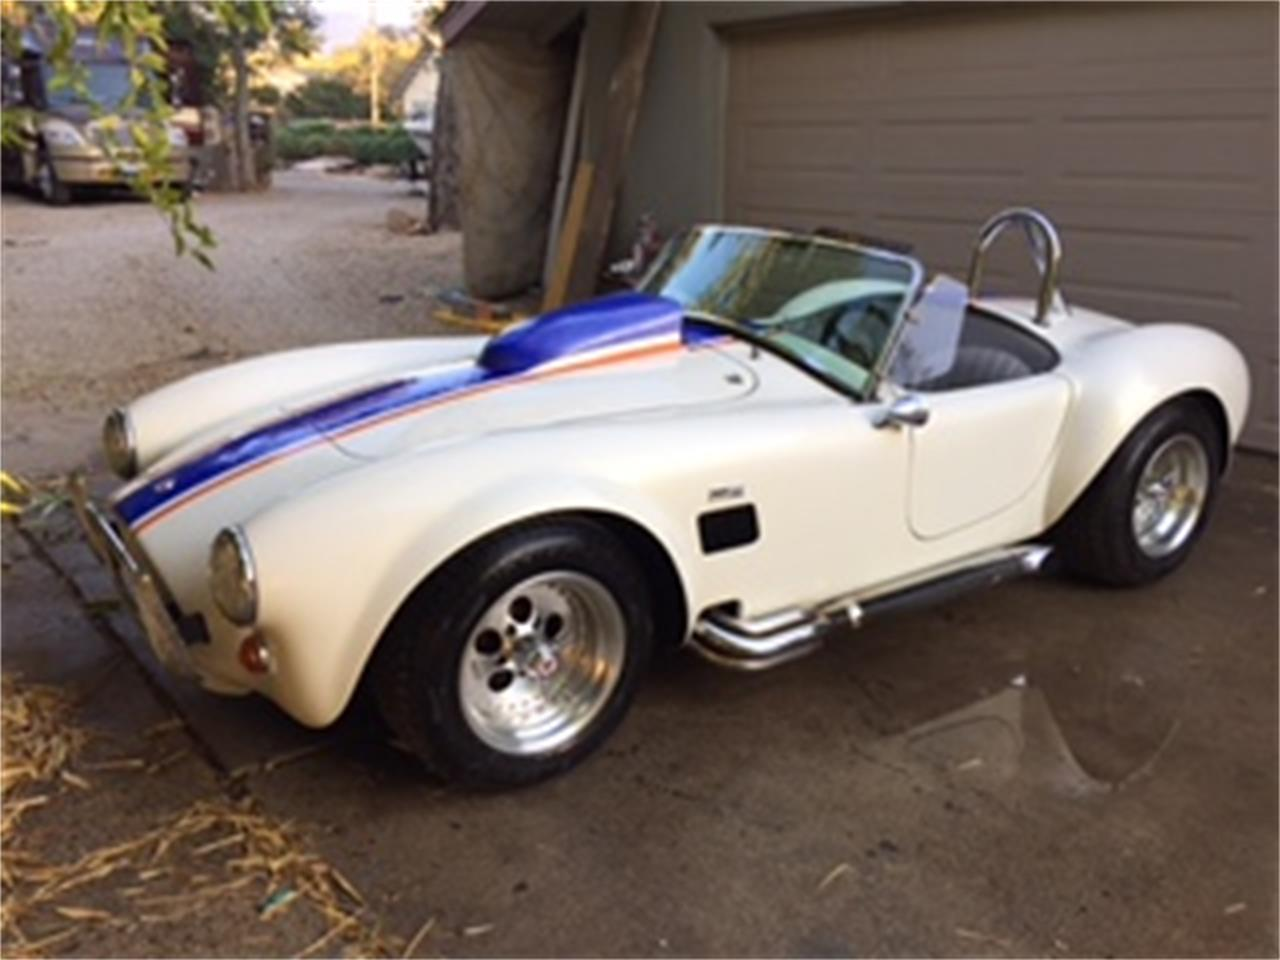 1966 Shelby Cobra Replica for sale in Ojai, CA